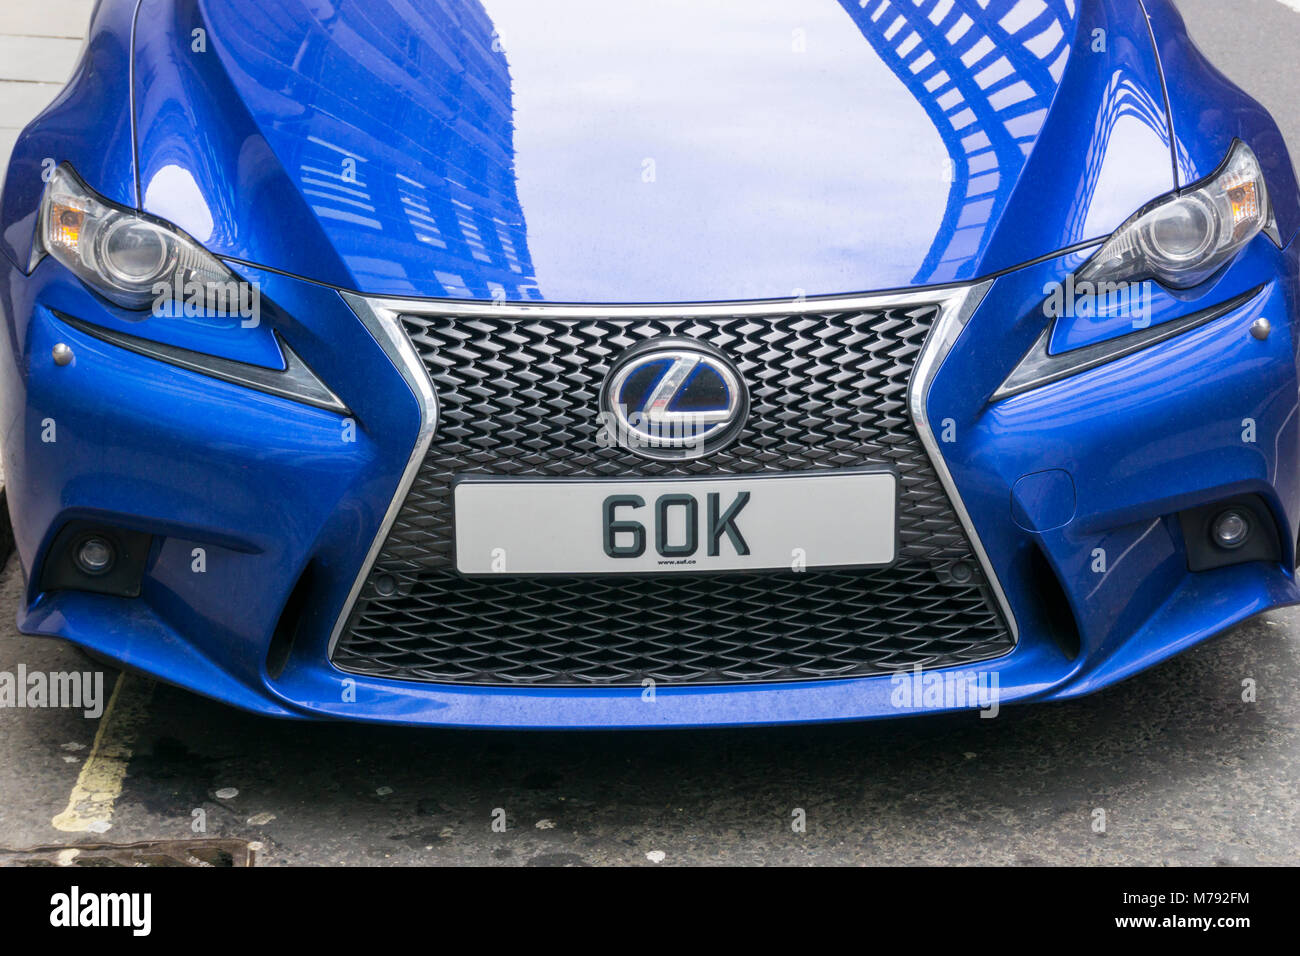 60K personalised number plates on a blue Lexus sports car in the City of London. - Stock Image